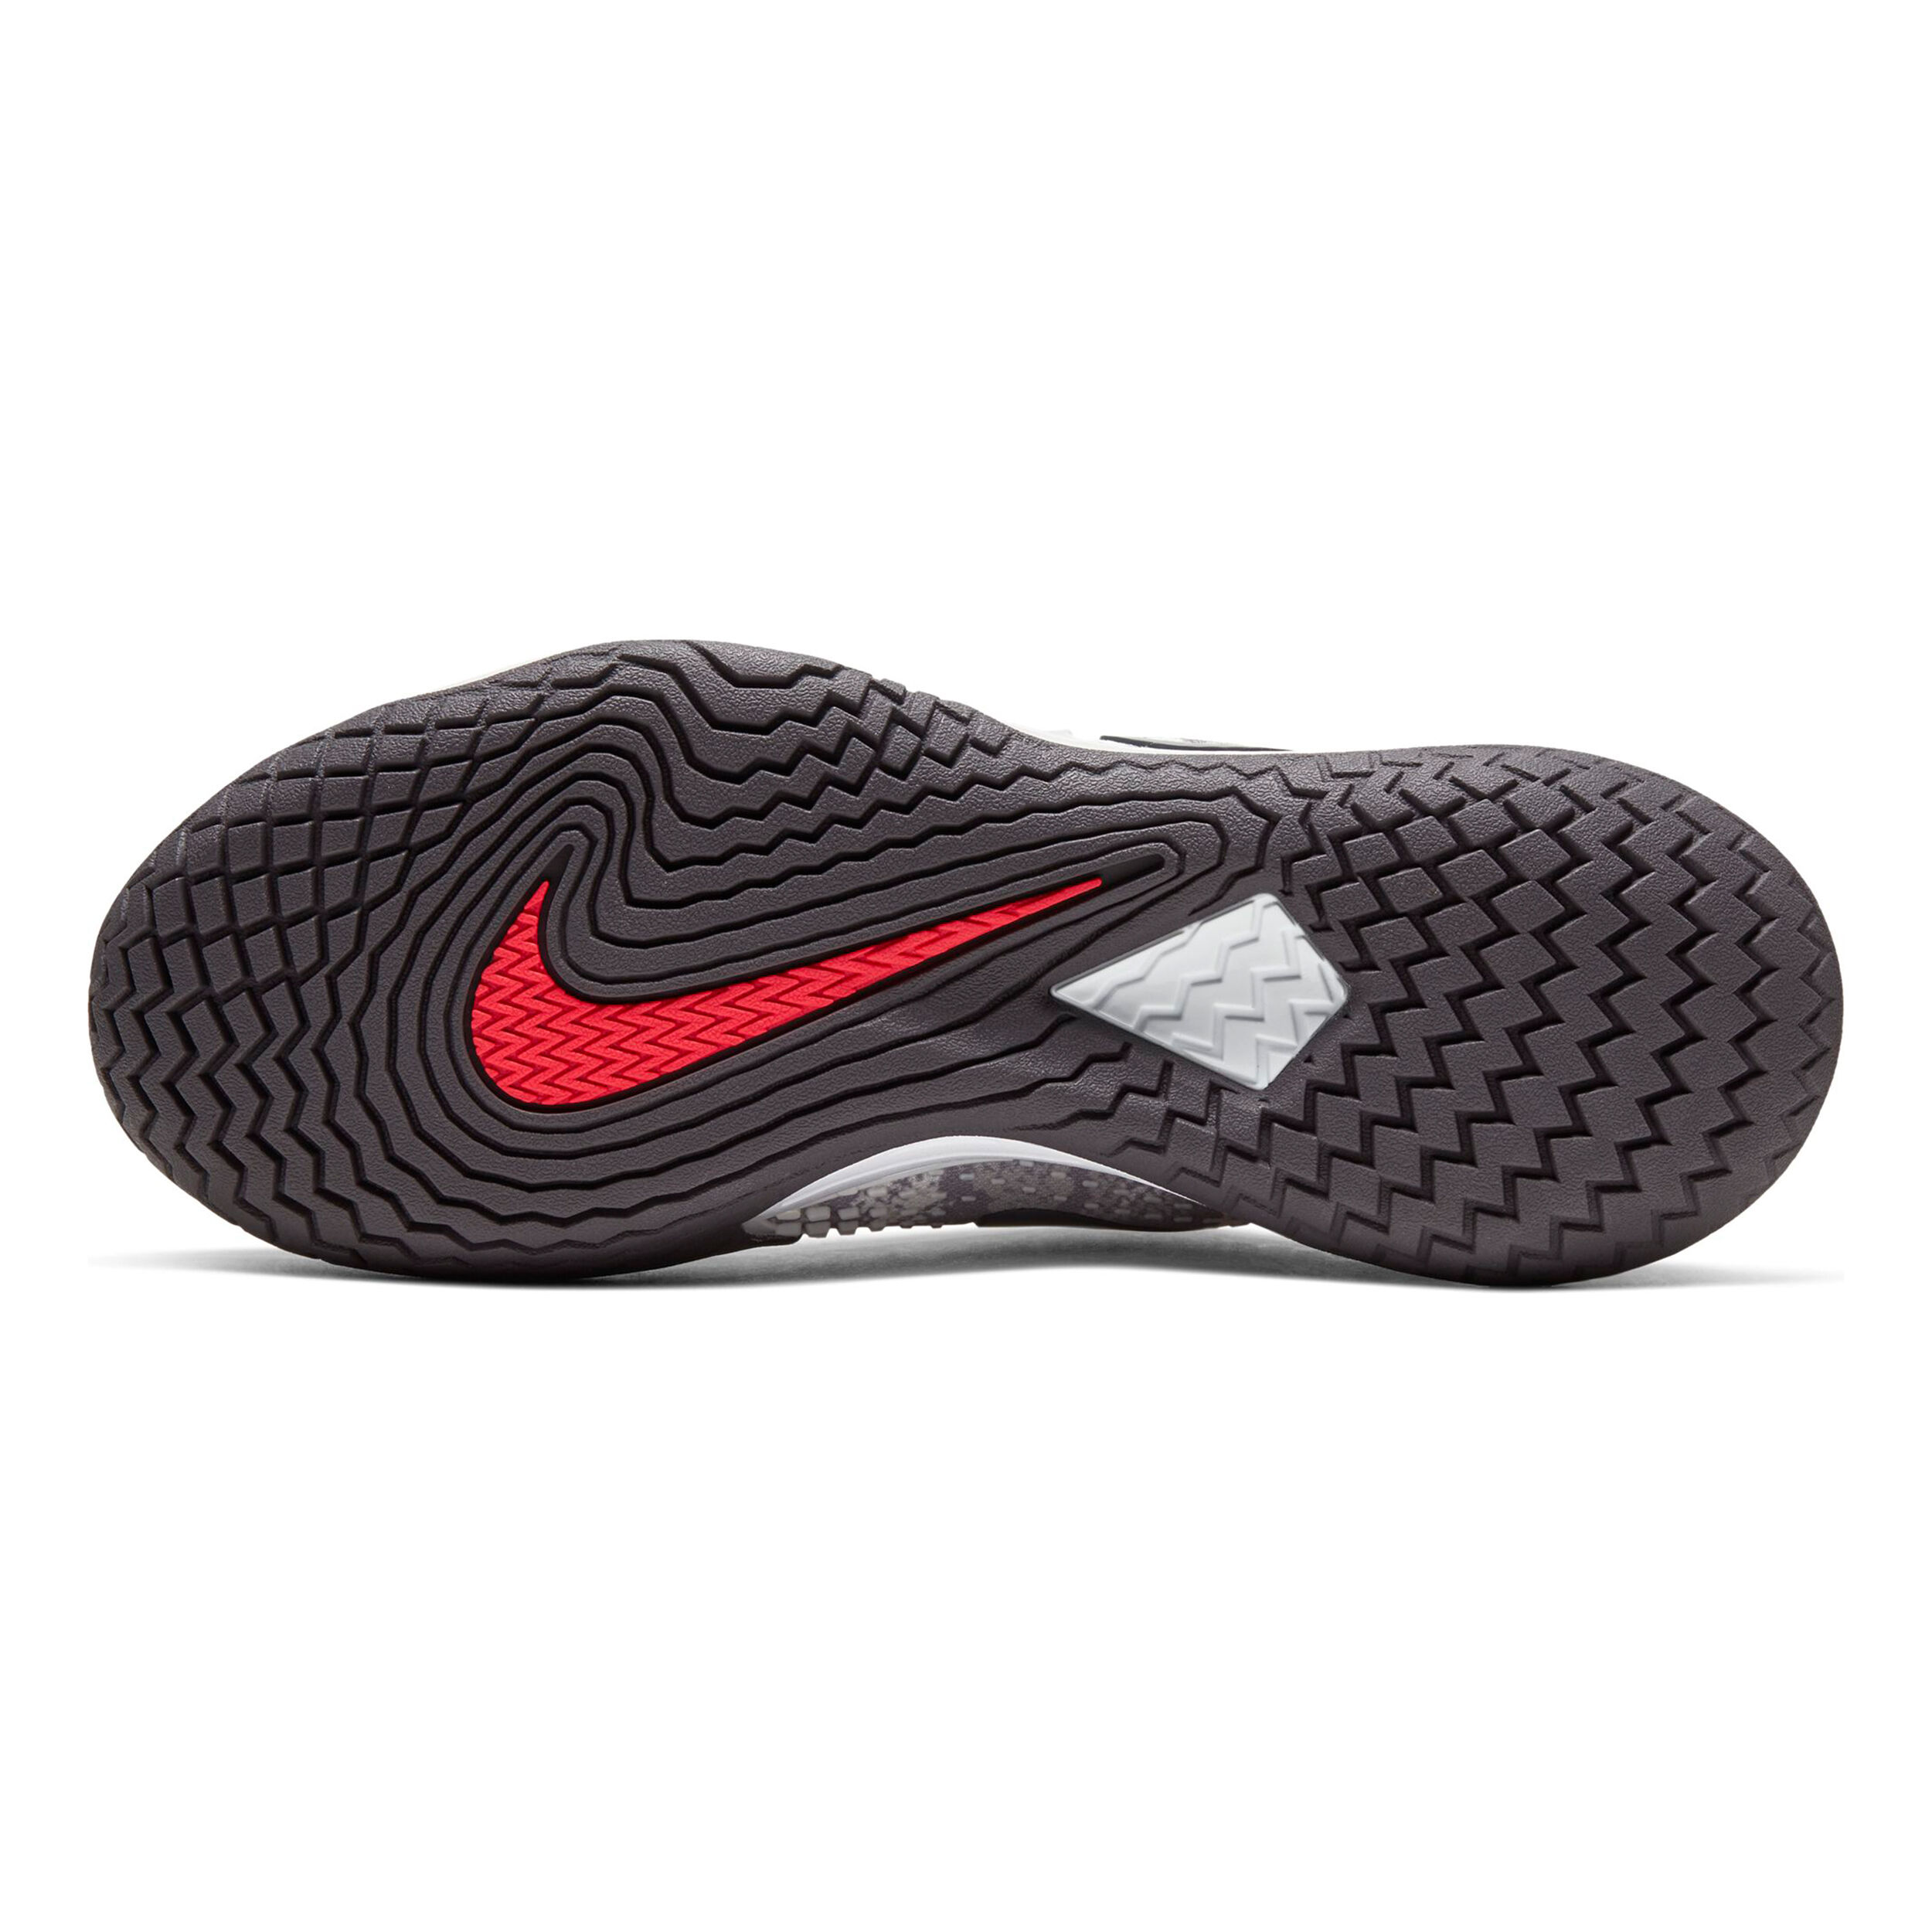 Nike Air Zoom Vapor Cage 4 Chaussure Surface Dures Femmes